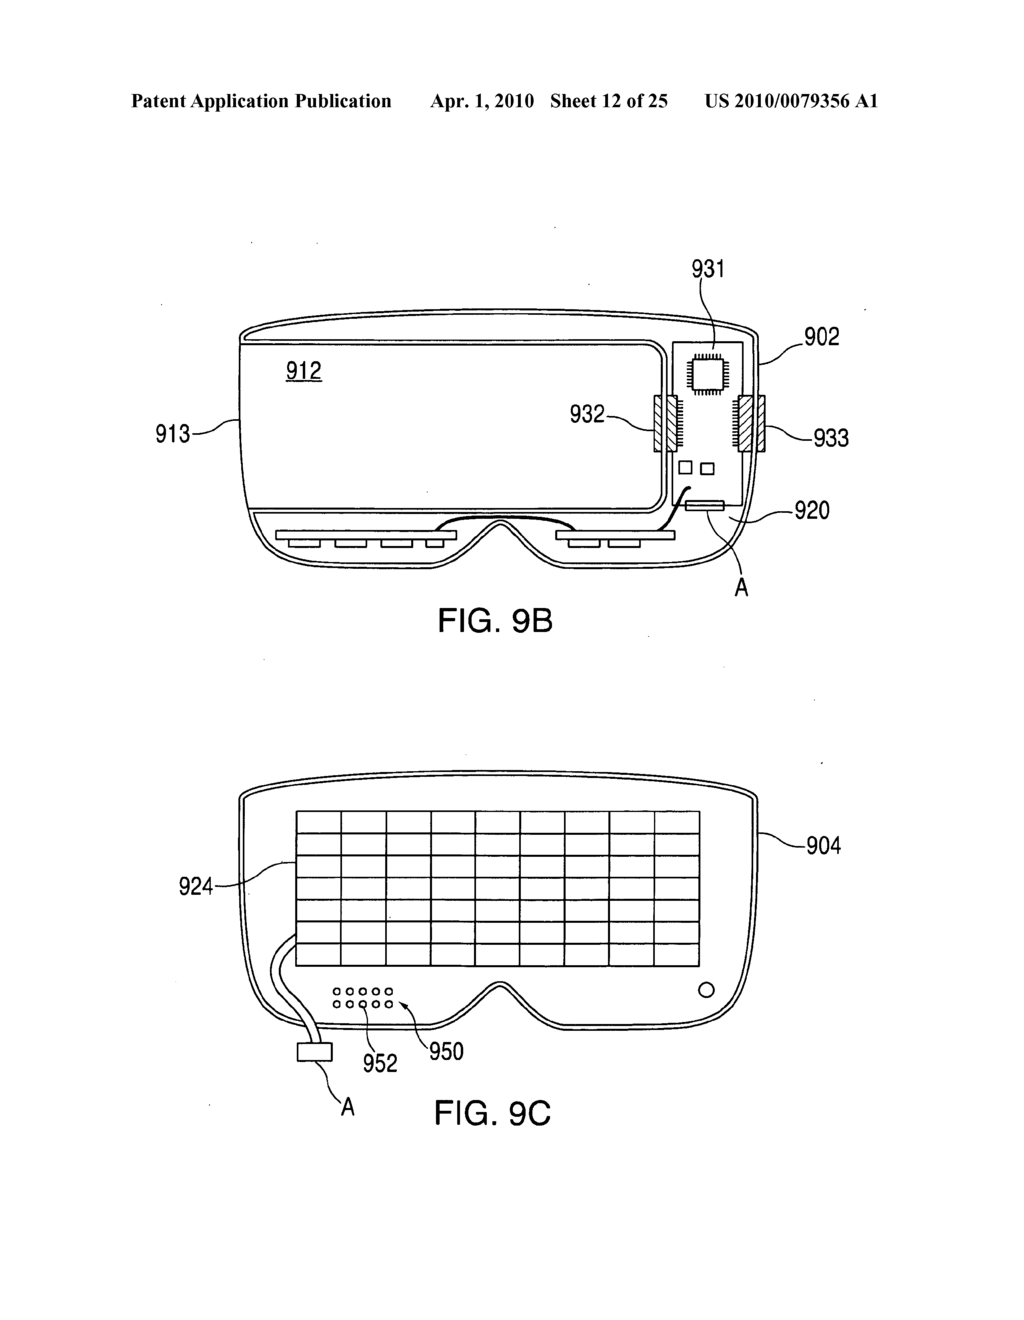 HEAD-MOUNTED DISPLAY APPARATUS FOR RETAINING A PORTABLE ELECTRONIC DEVICE WITH DISPLAY - diagram, schematic, and image 13